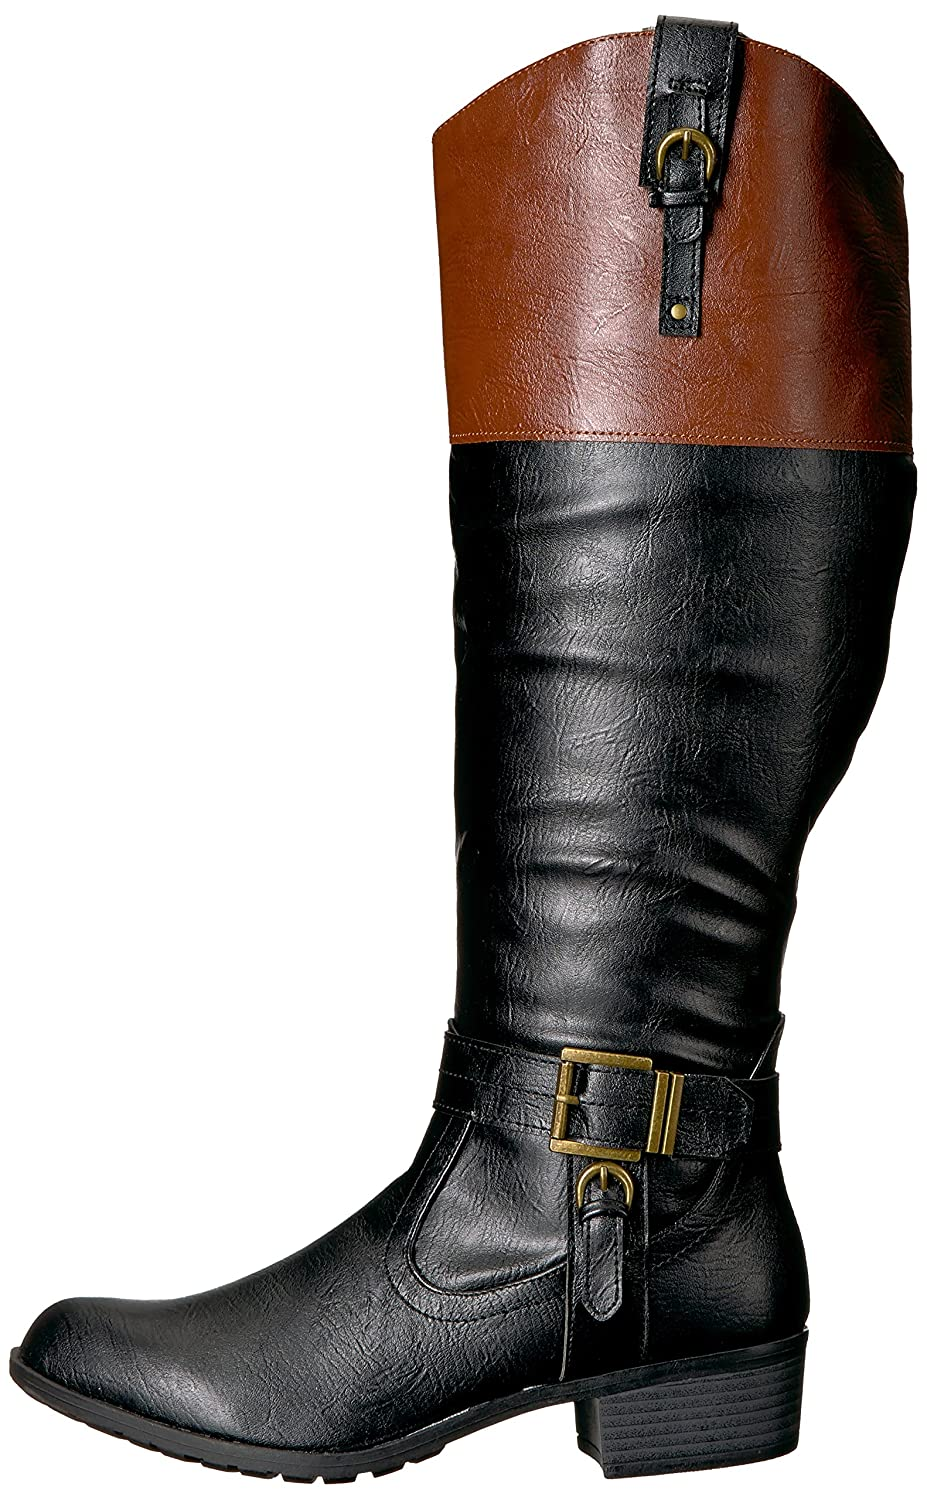 Rampage Women's Ivelia Fashion Knee High Casual Wide Riding Boot (Available In Wide Casual Calf) B076HFTTP9 5.5 M US Wide Shaft|Black/Cognac 5afc75